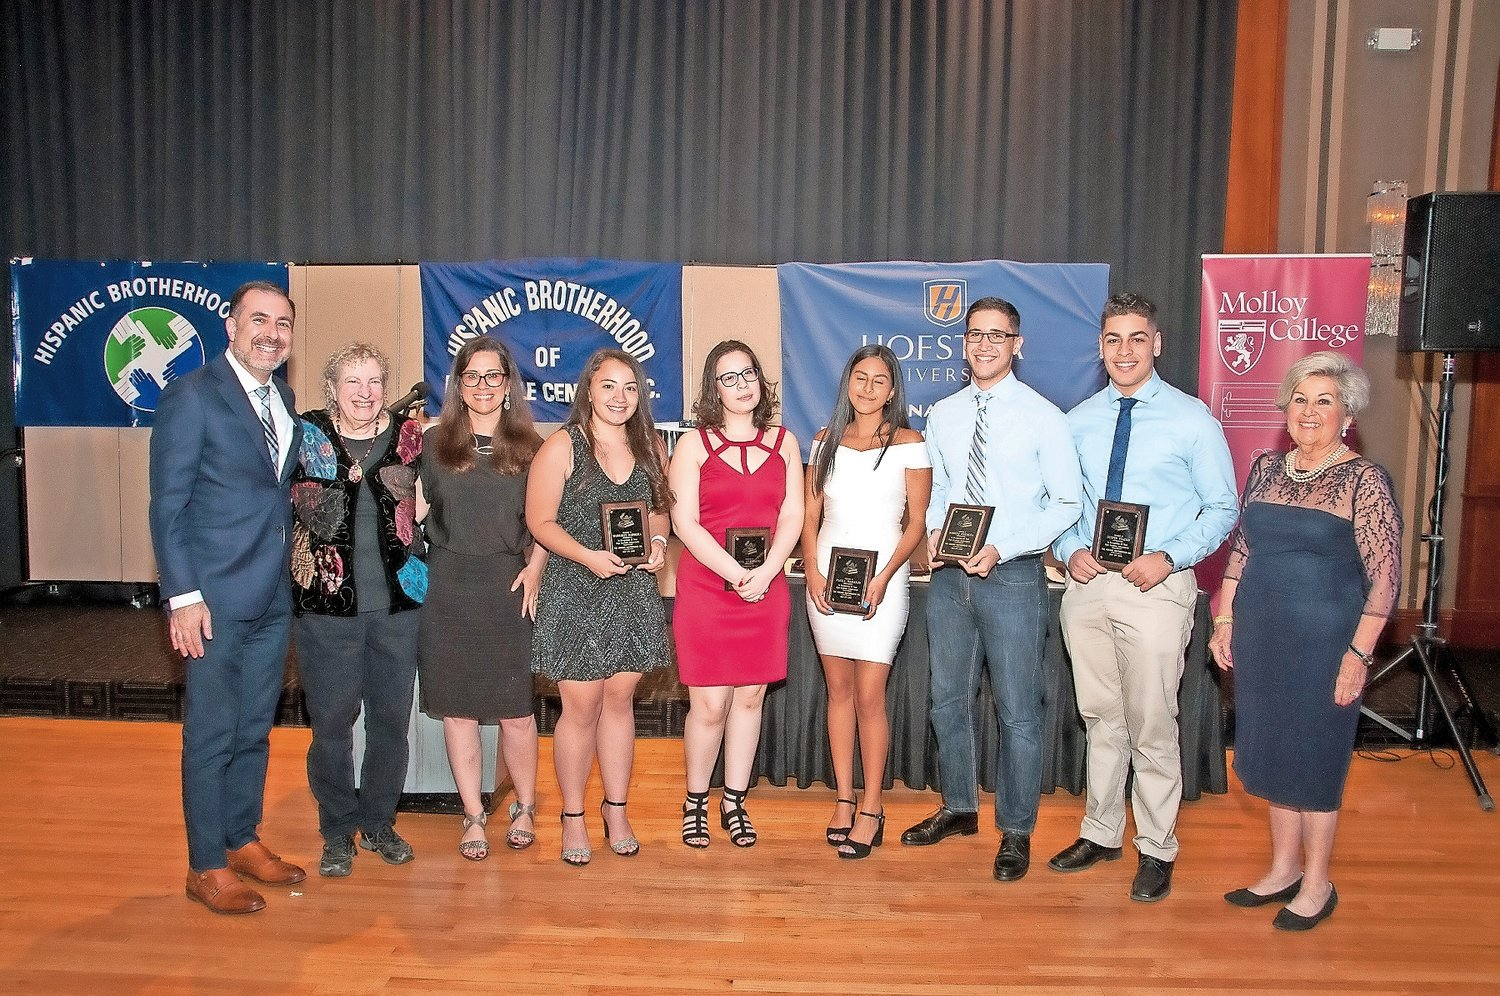 The scholarship recipients, Margaret Barreira, fourth from left, Ana Avendano, Paula Naranjo, Robert Peralta and Justin Fiallo, were joined by Dr. David Rose, the Oceanside School District's world, languages and English as a New Language department director, far left; Ellen Grossman, a Hispanic Brotherhood board member; Marguerite Keller, the Brotherhood's co-director; and Margarita Grasing, its executive director.